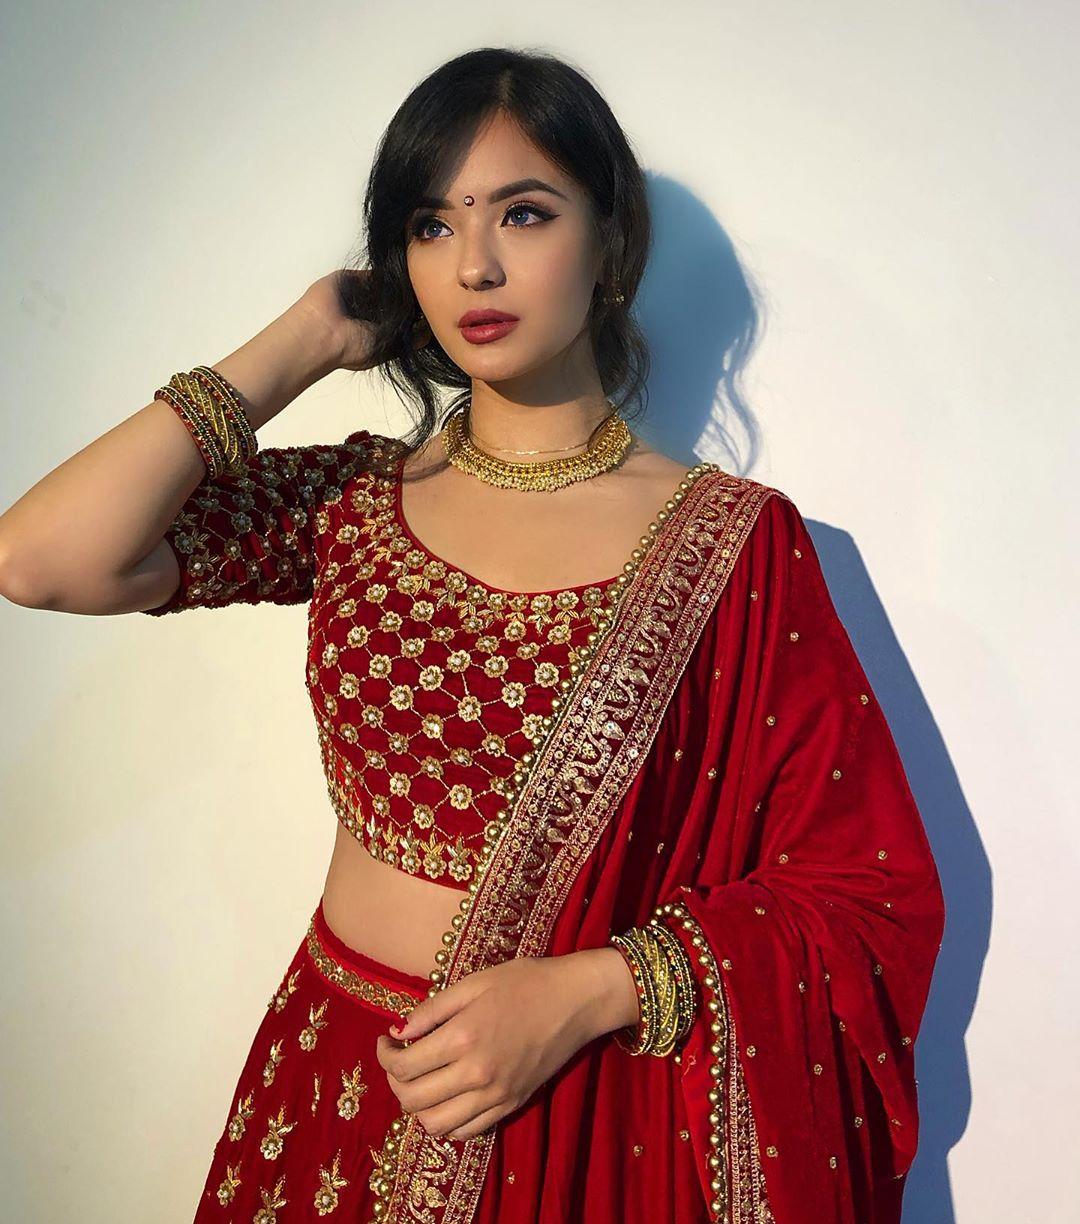 Jassita Gurung in Red lehenga